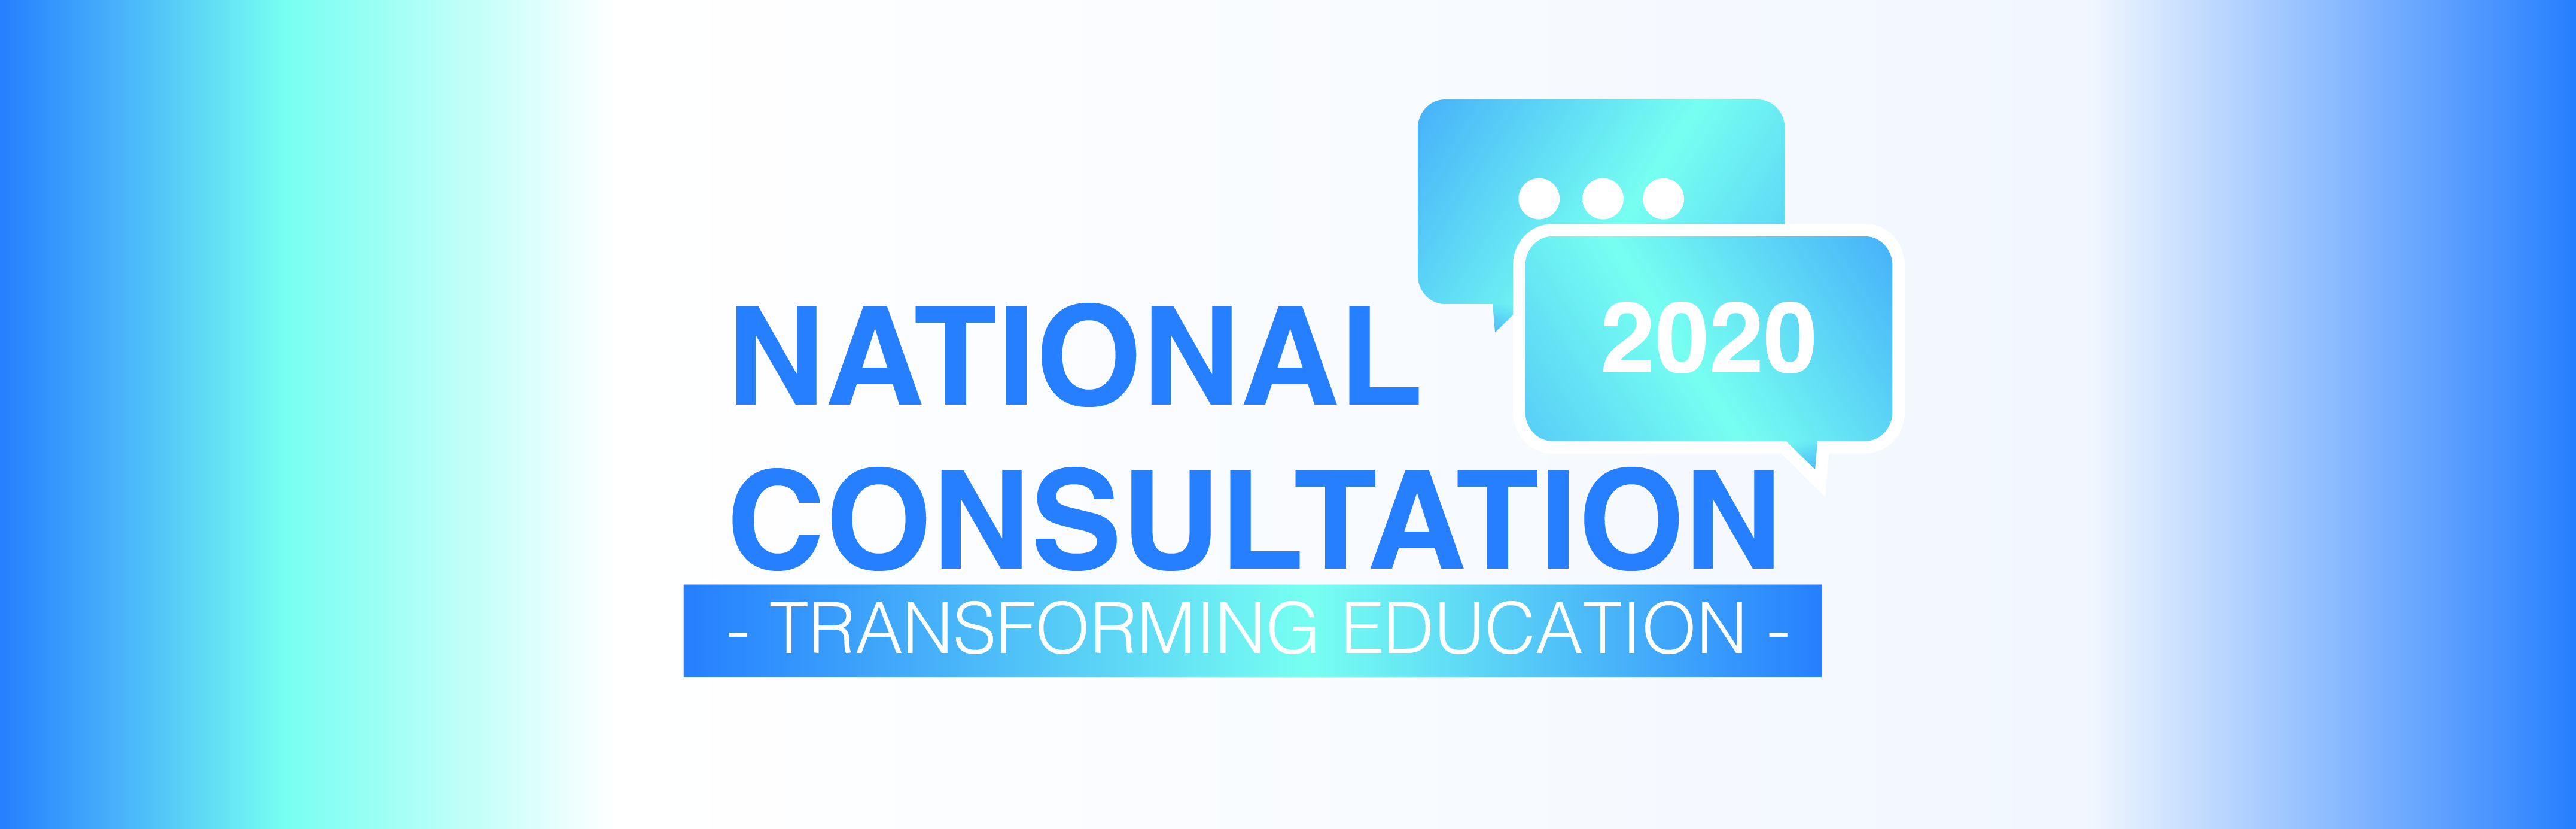 National Consultation 2020: Transforming Education